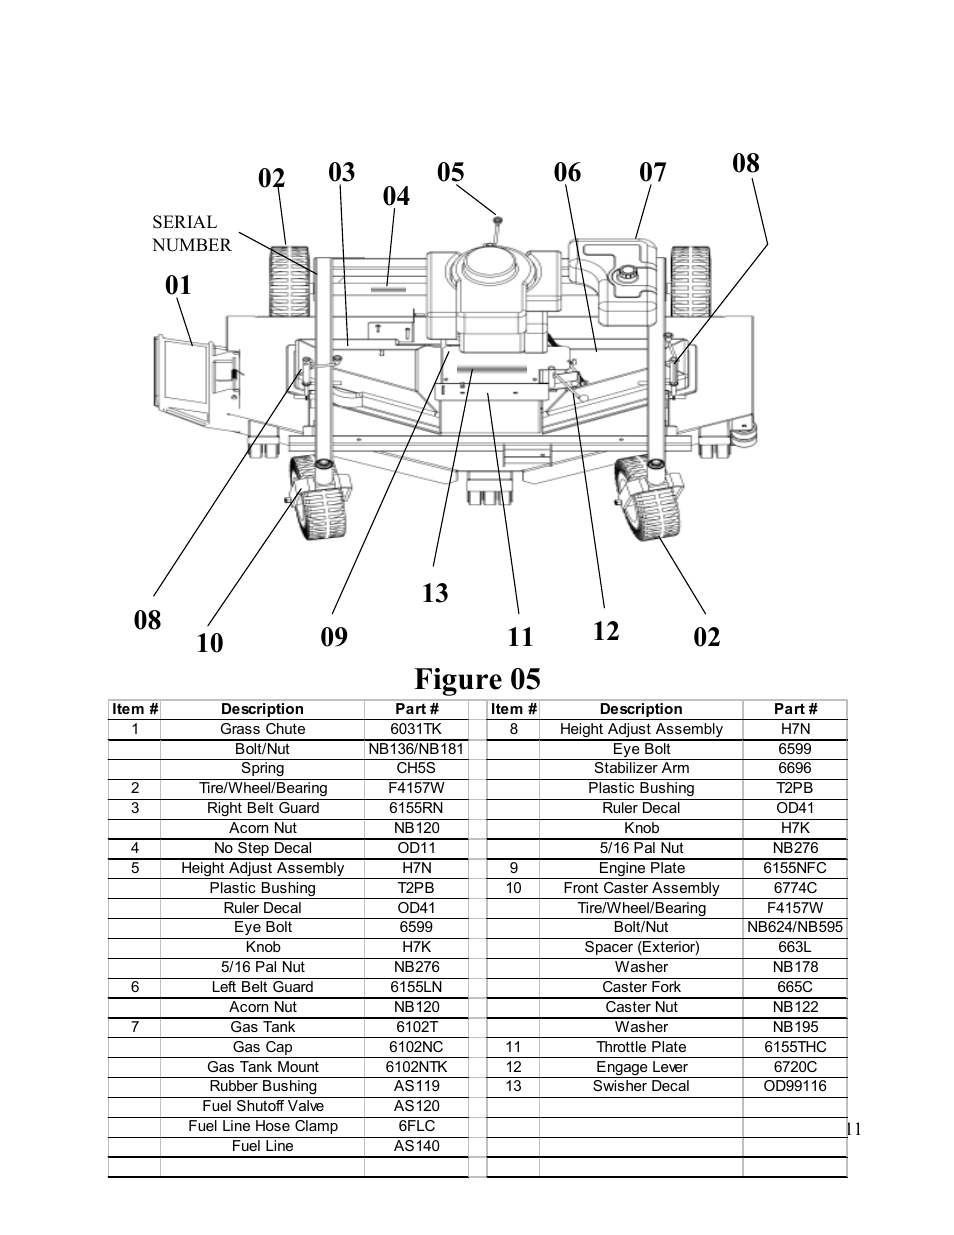 swisher t1260 wiring diagram swisher t1360 wiring diagram wiring ferris  mower wiring diagram figure 05 swisher